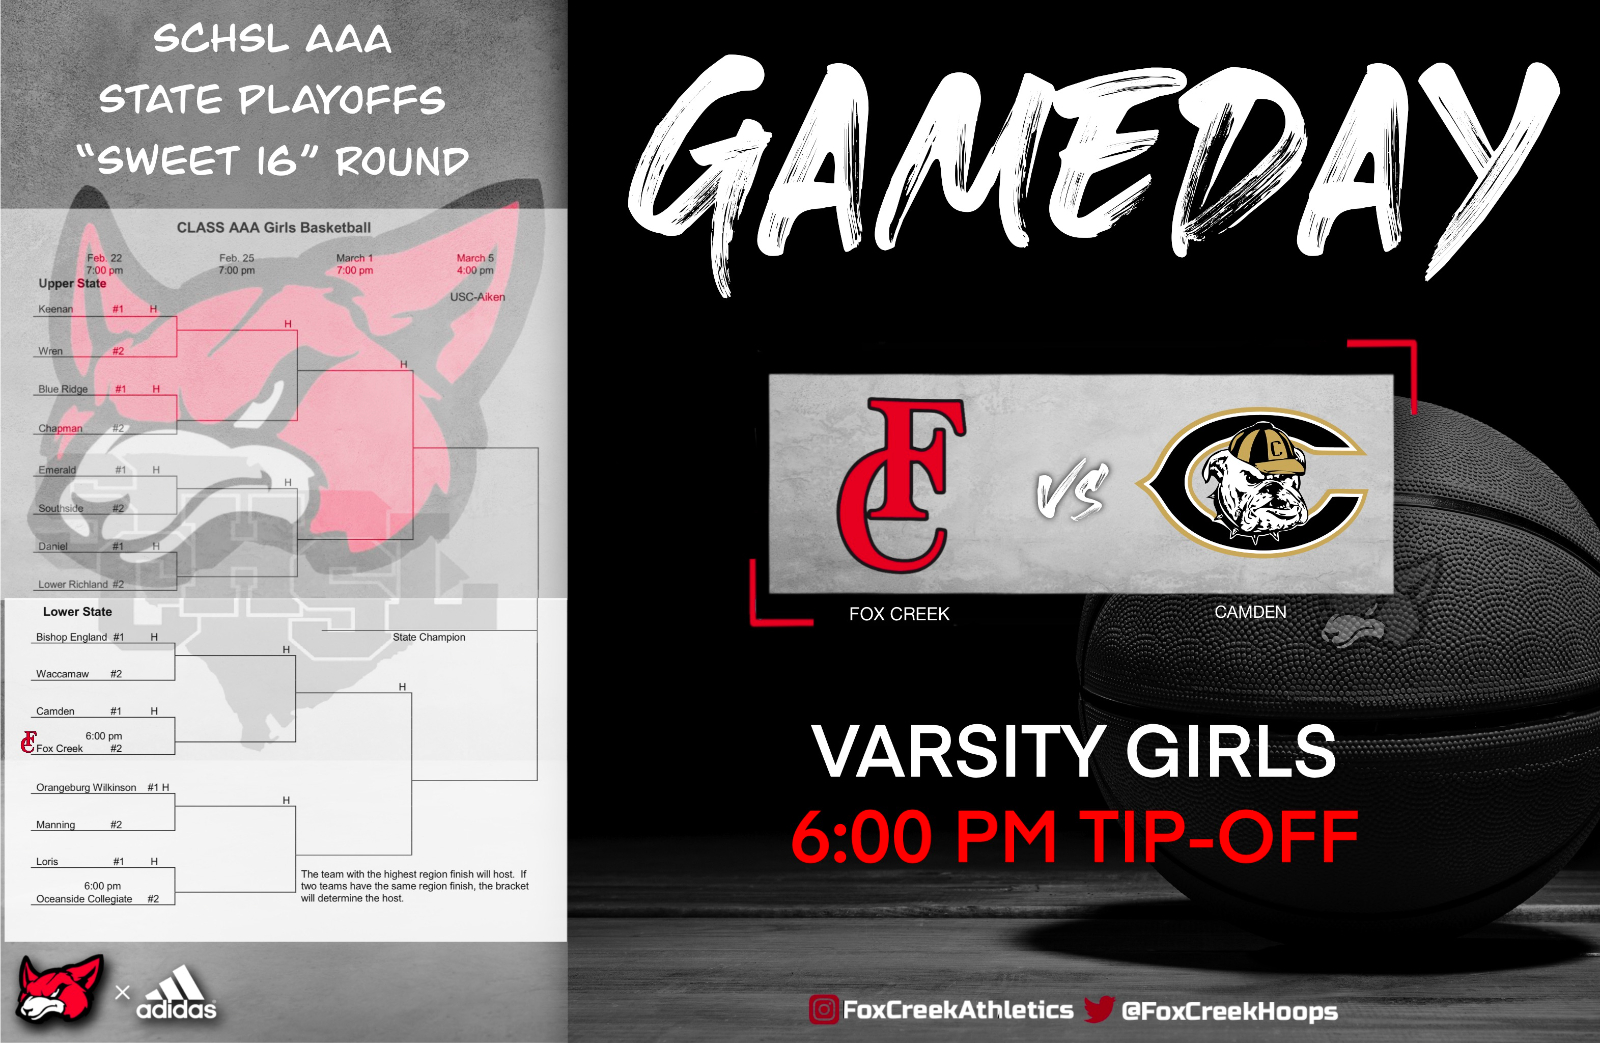 """Varsity Girls Basketball Take On Camden HS TONIGHT in the """"Sweet 16"""" Round of the SCHSL Class AAA State Playoffs"""